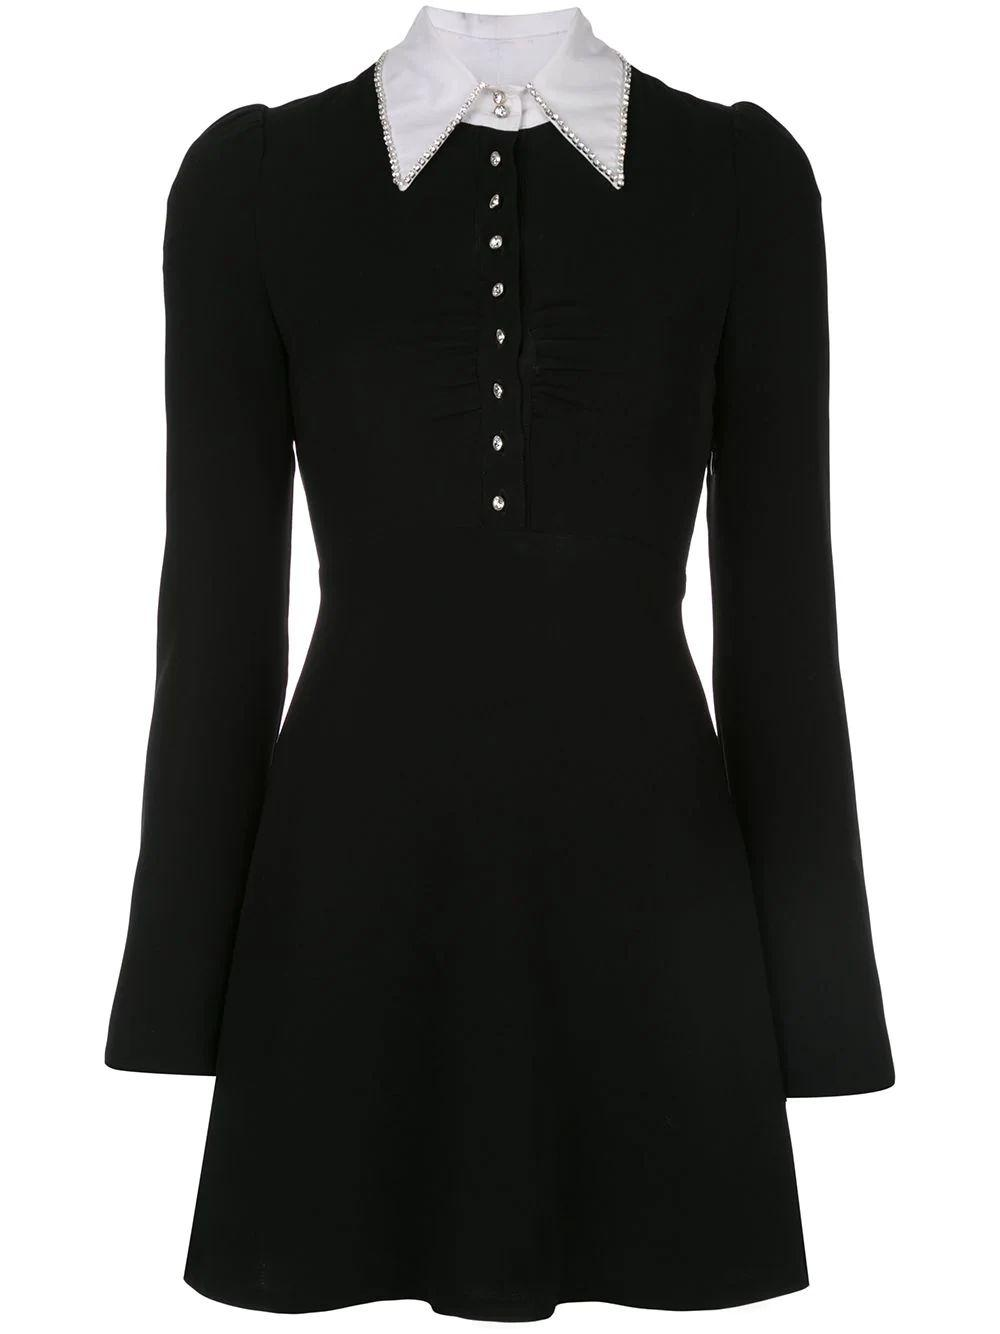 Aubrey Button up With Collar Long Sleeve Dress